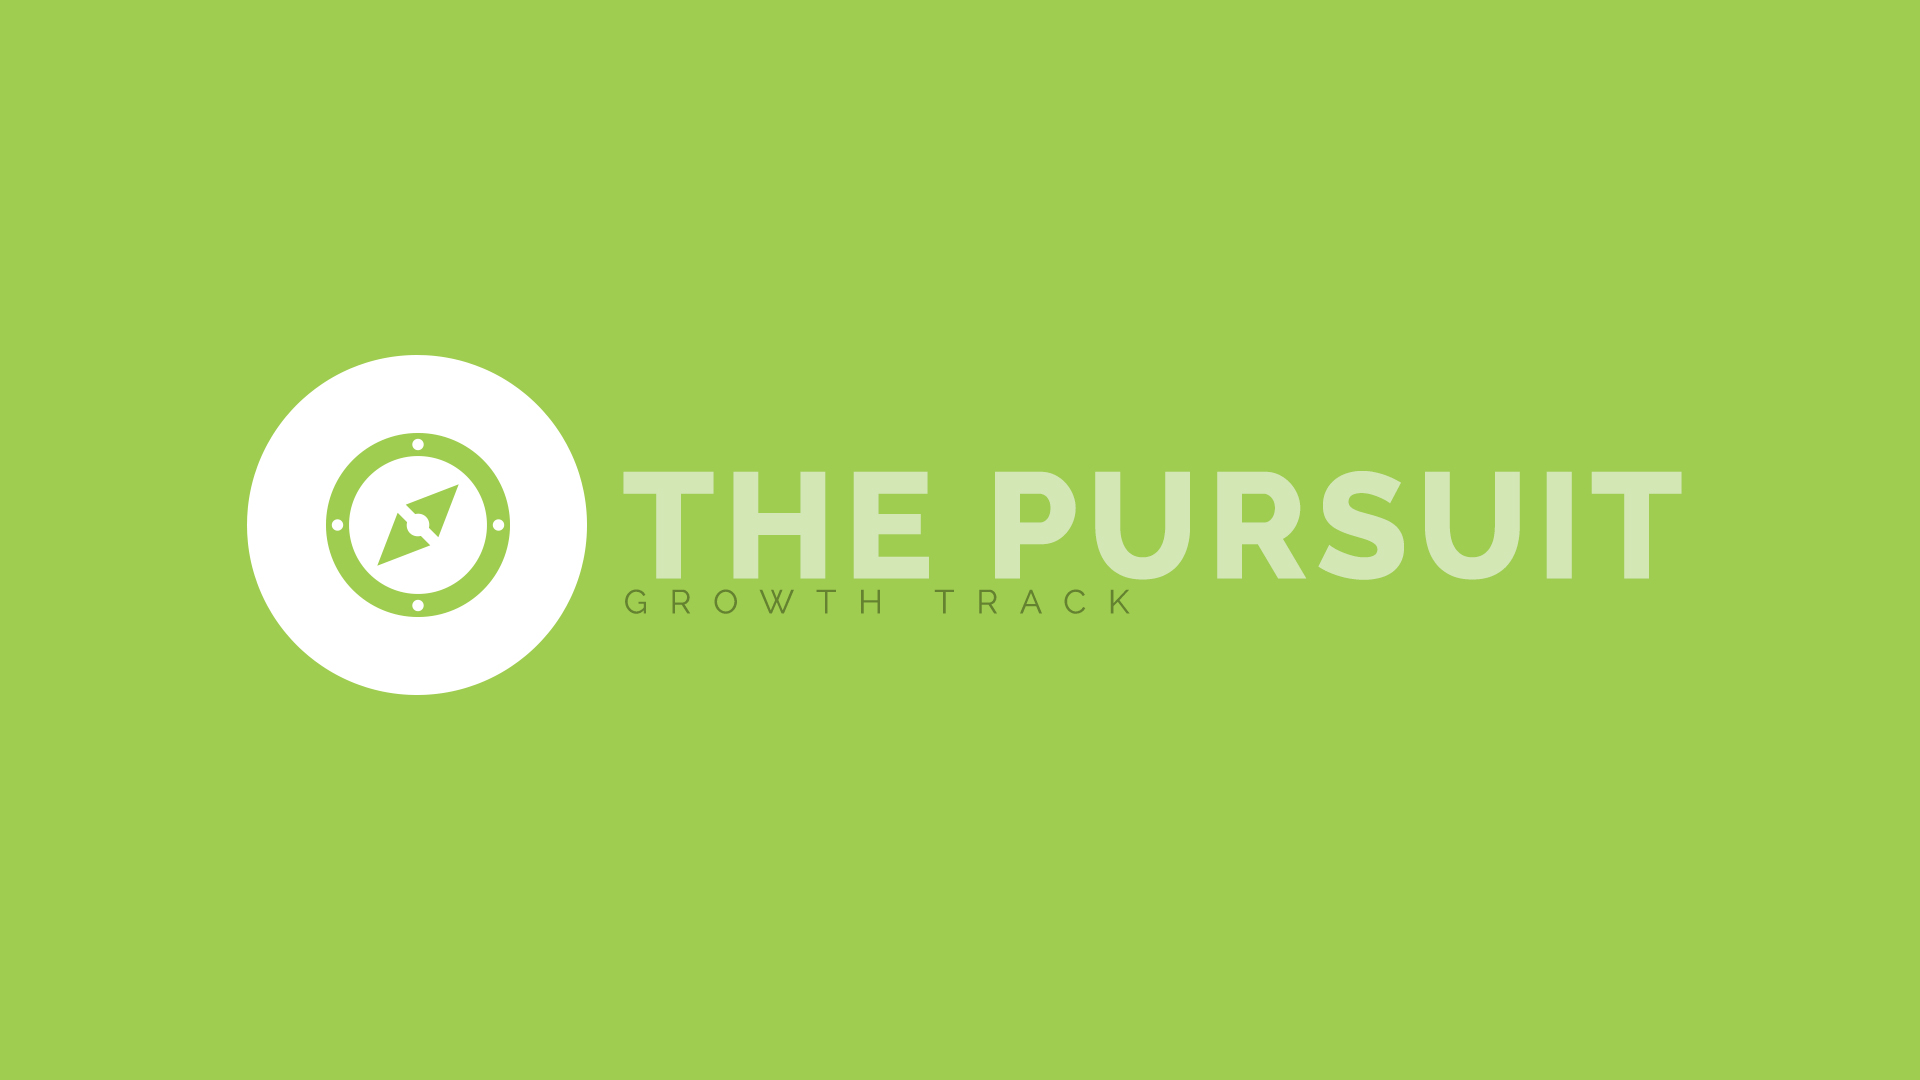 The Pursuit - The Pursuit is an in depth course of study that goes through the Bible as a collection of stories that shape our faith. Lead by biblical scholars from within PDX First, The Pursuit will open your eyes and your heart to the culture by which Jesus lived and breathed, and why ,and how He spoke in the authority He did.Register Here